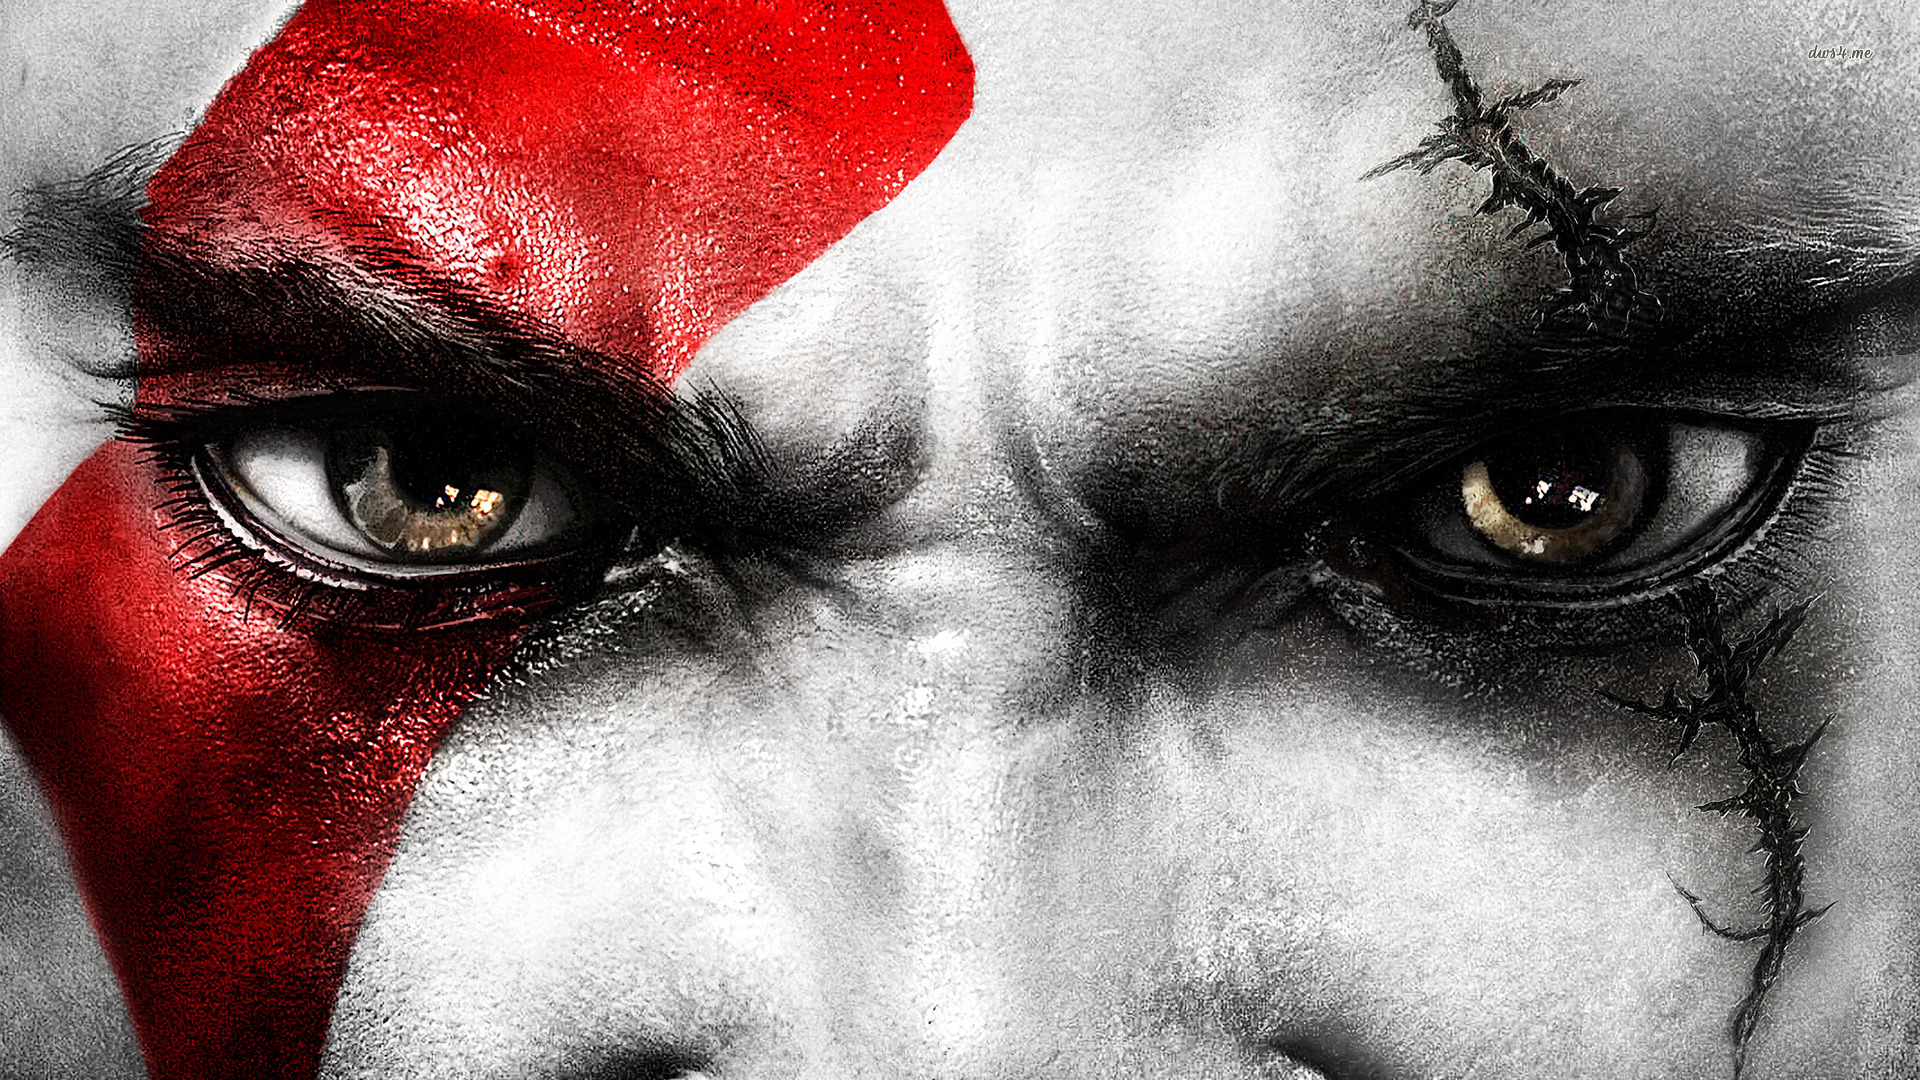 kratos god of war 3 wallpapers hd 263492 kratos god of war 3 1920x1080